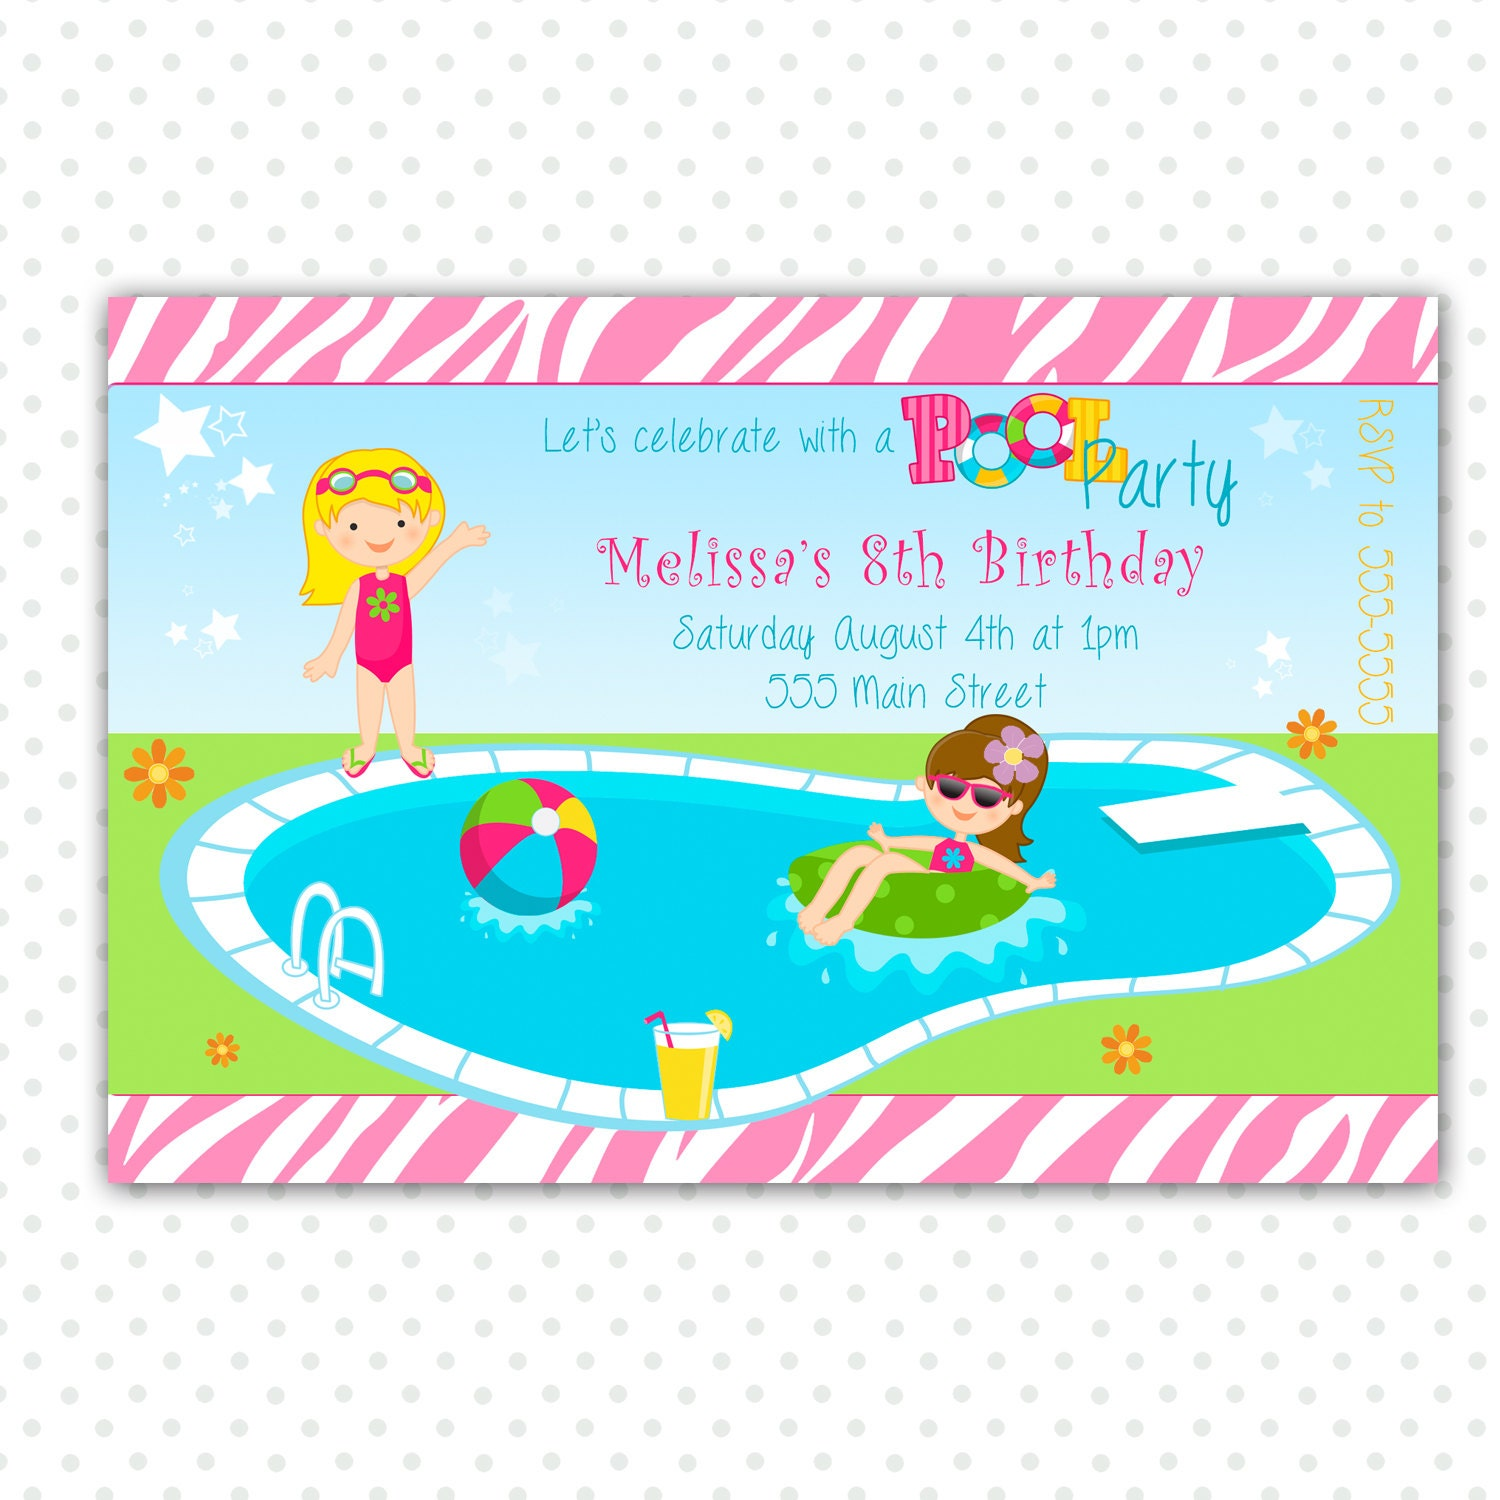 How to make pool party invitations akbaeenw how to make pool party invitations pool party birthday invitation filmwisefo